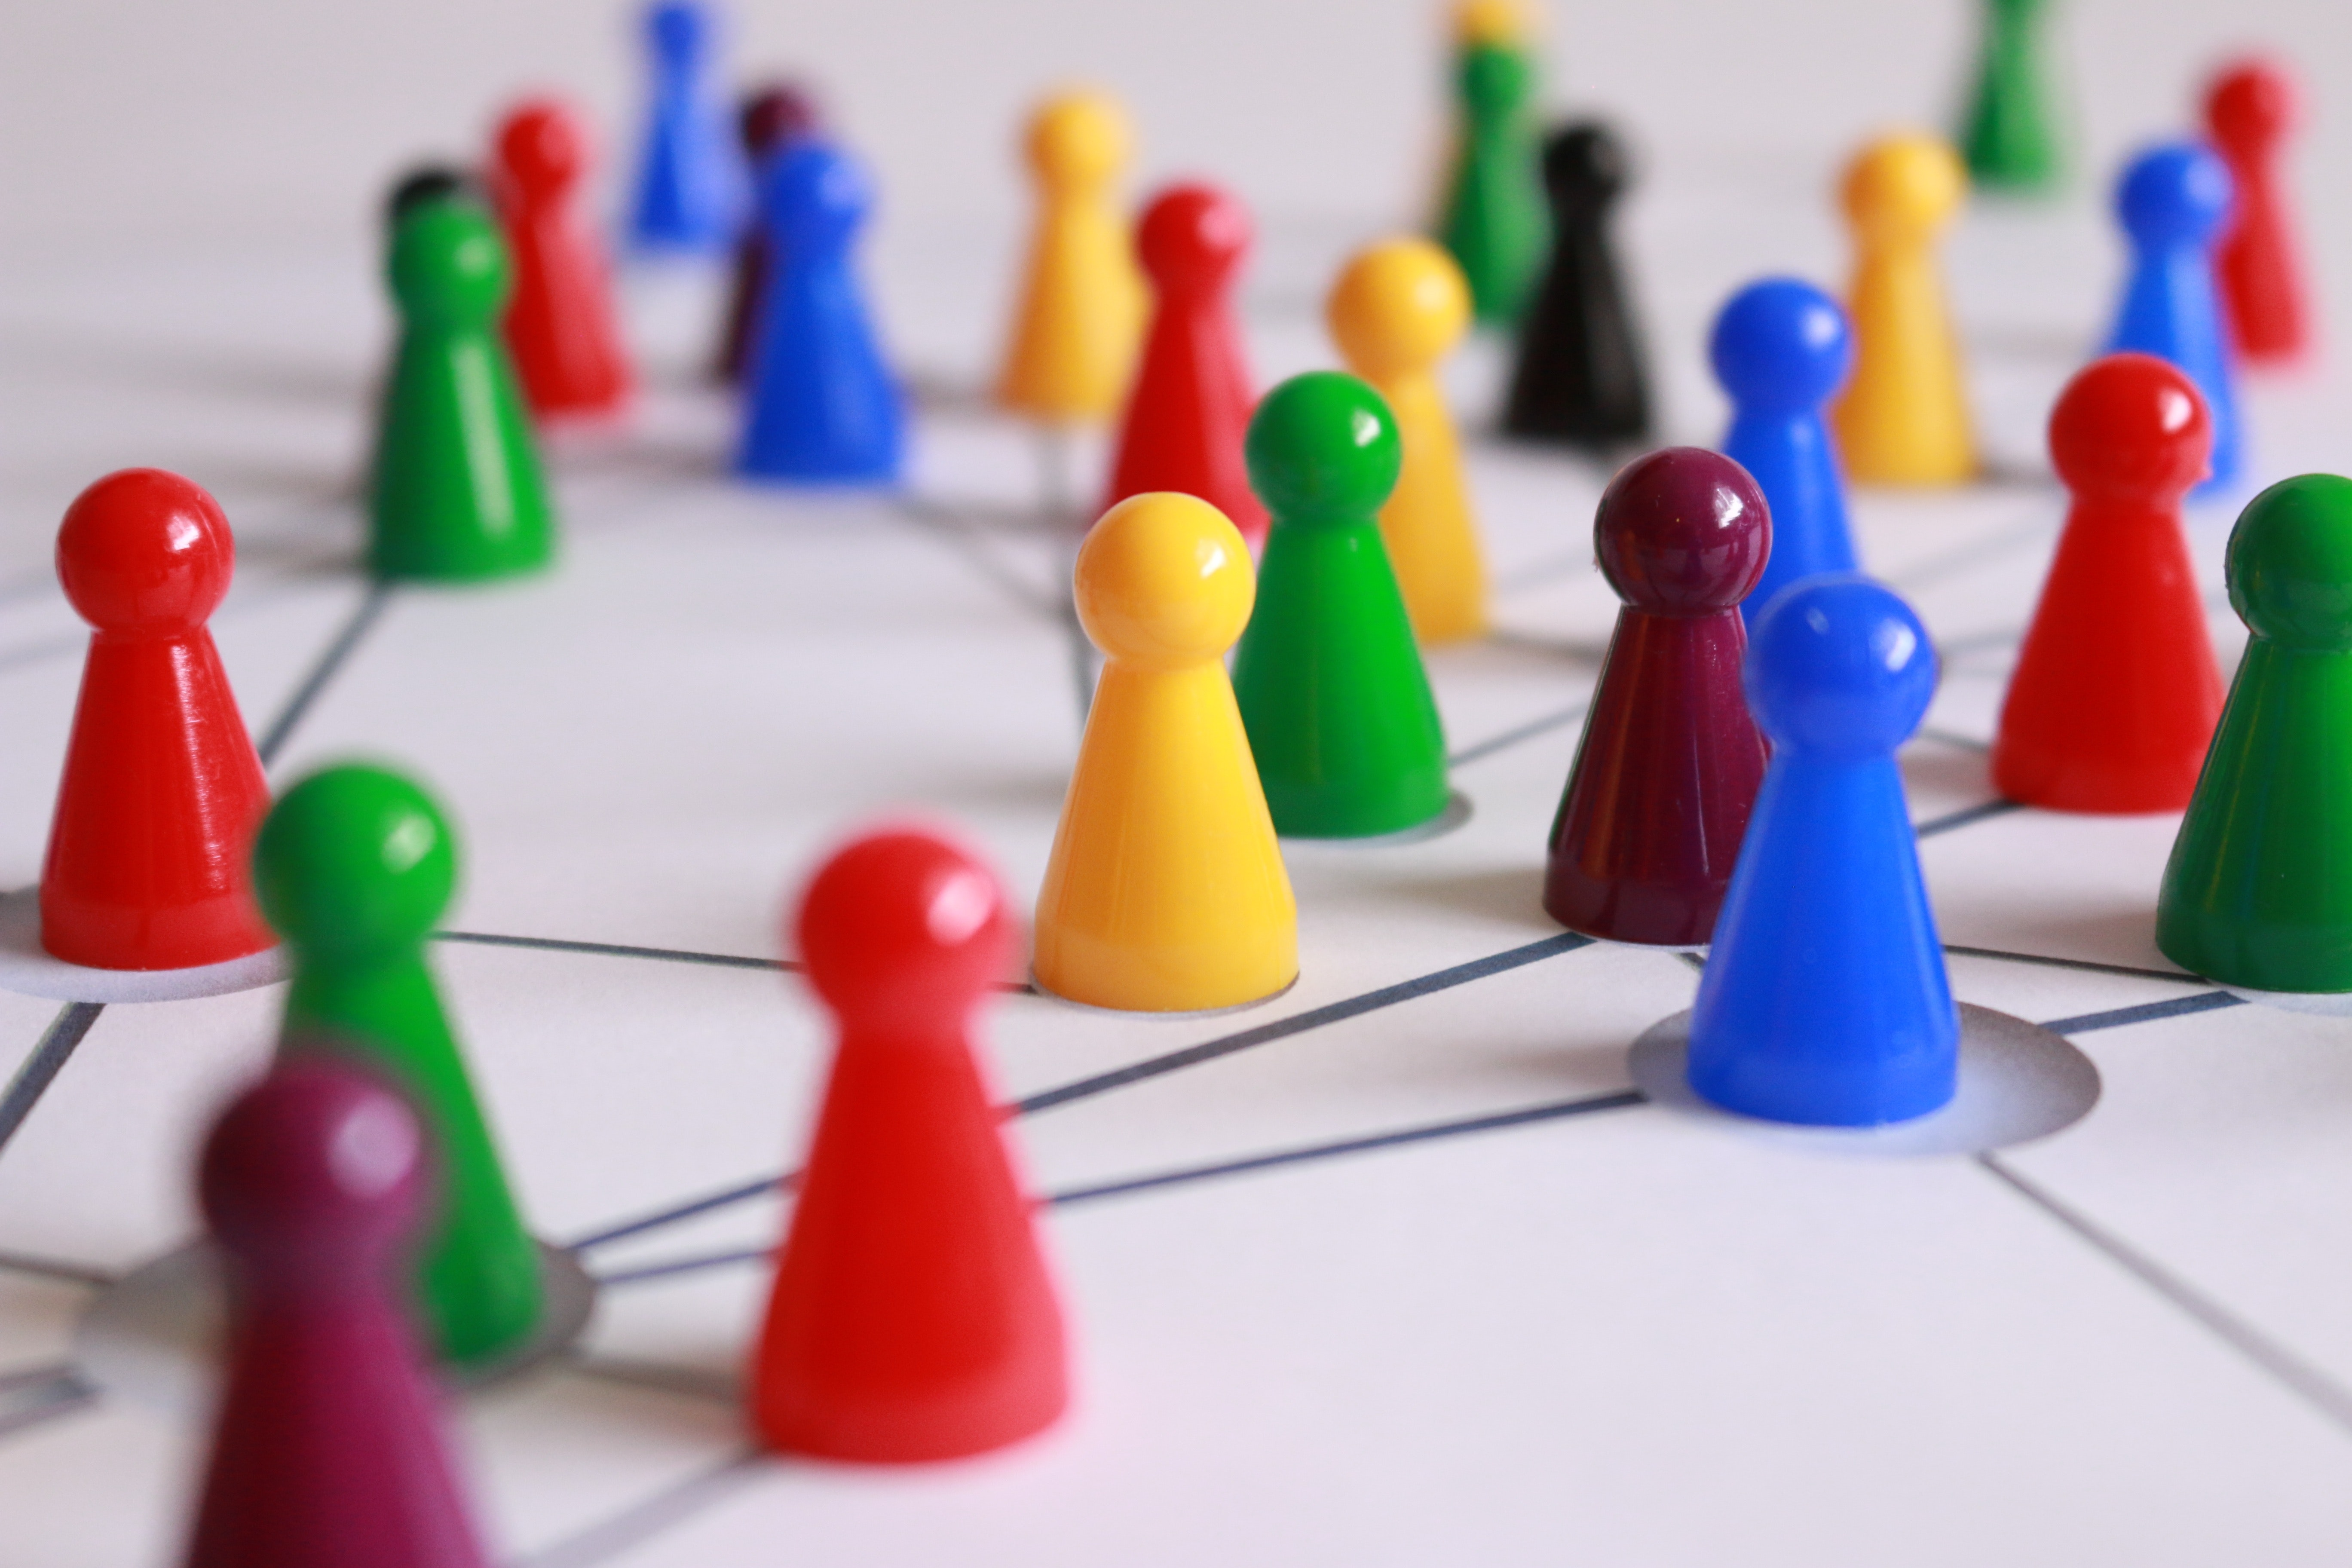 Image showing players connected on a board game, much like those in a brand community.